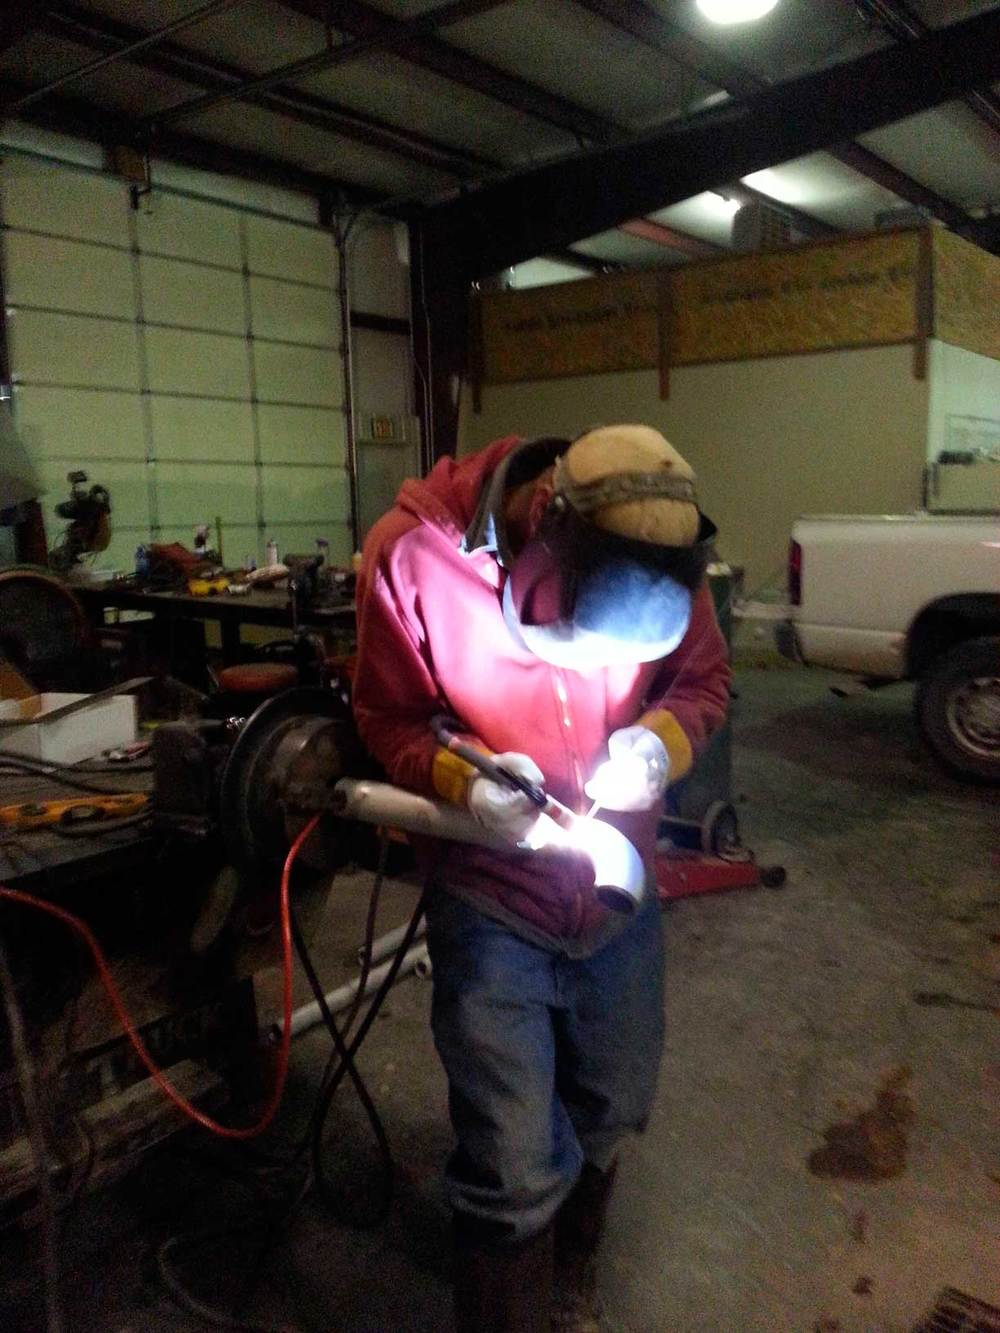 TIG welding off of rig